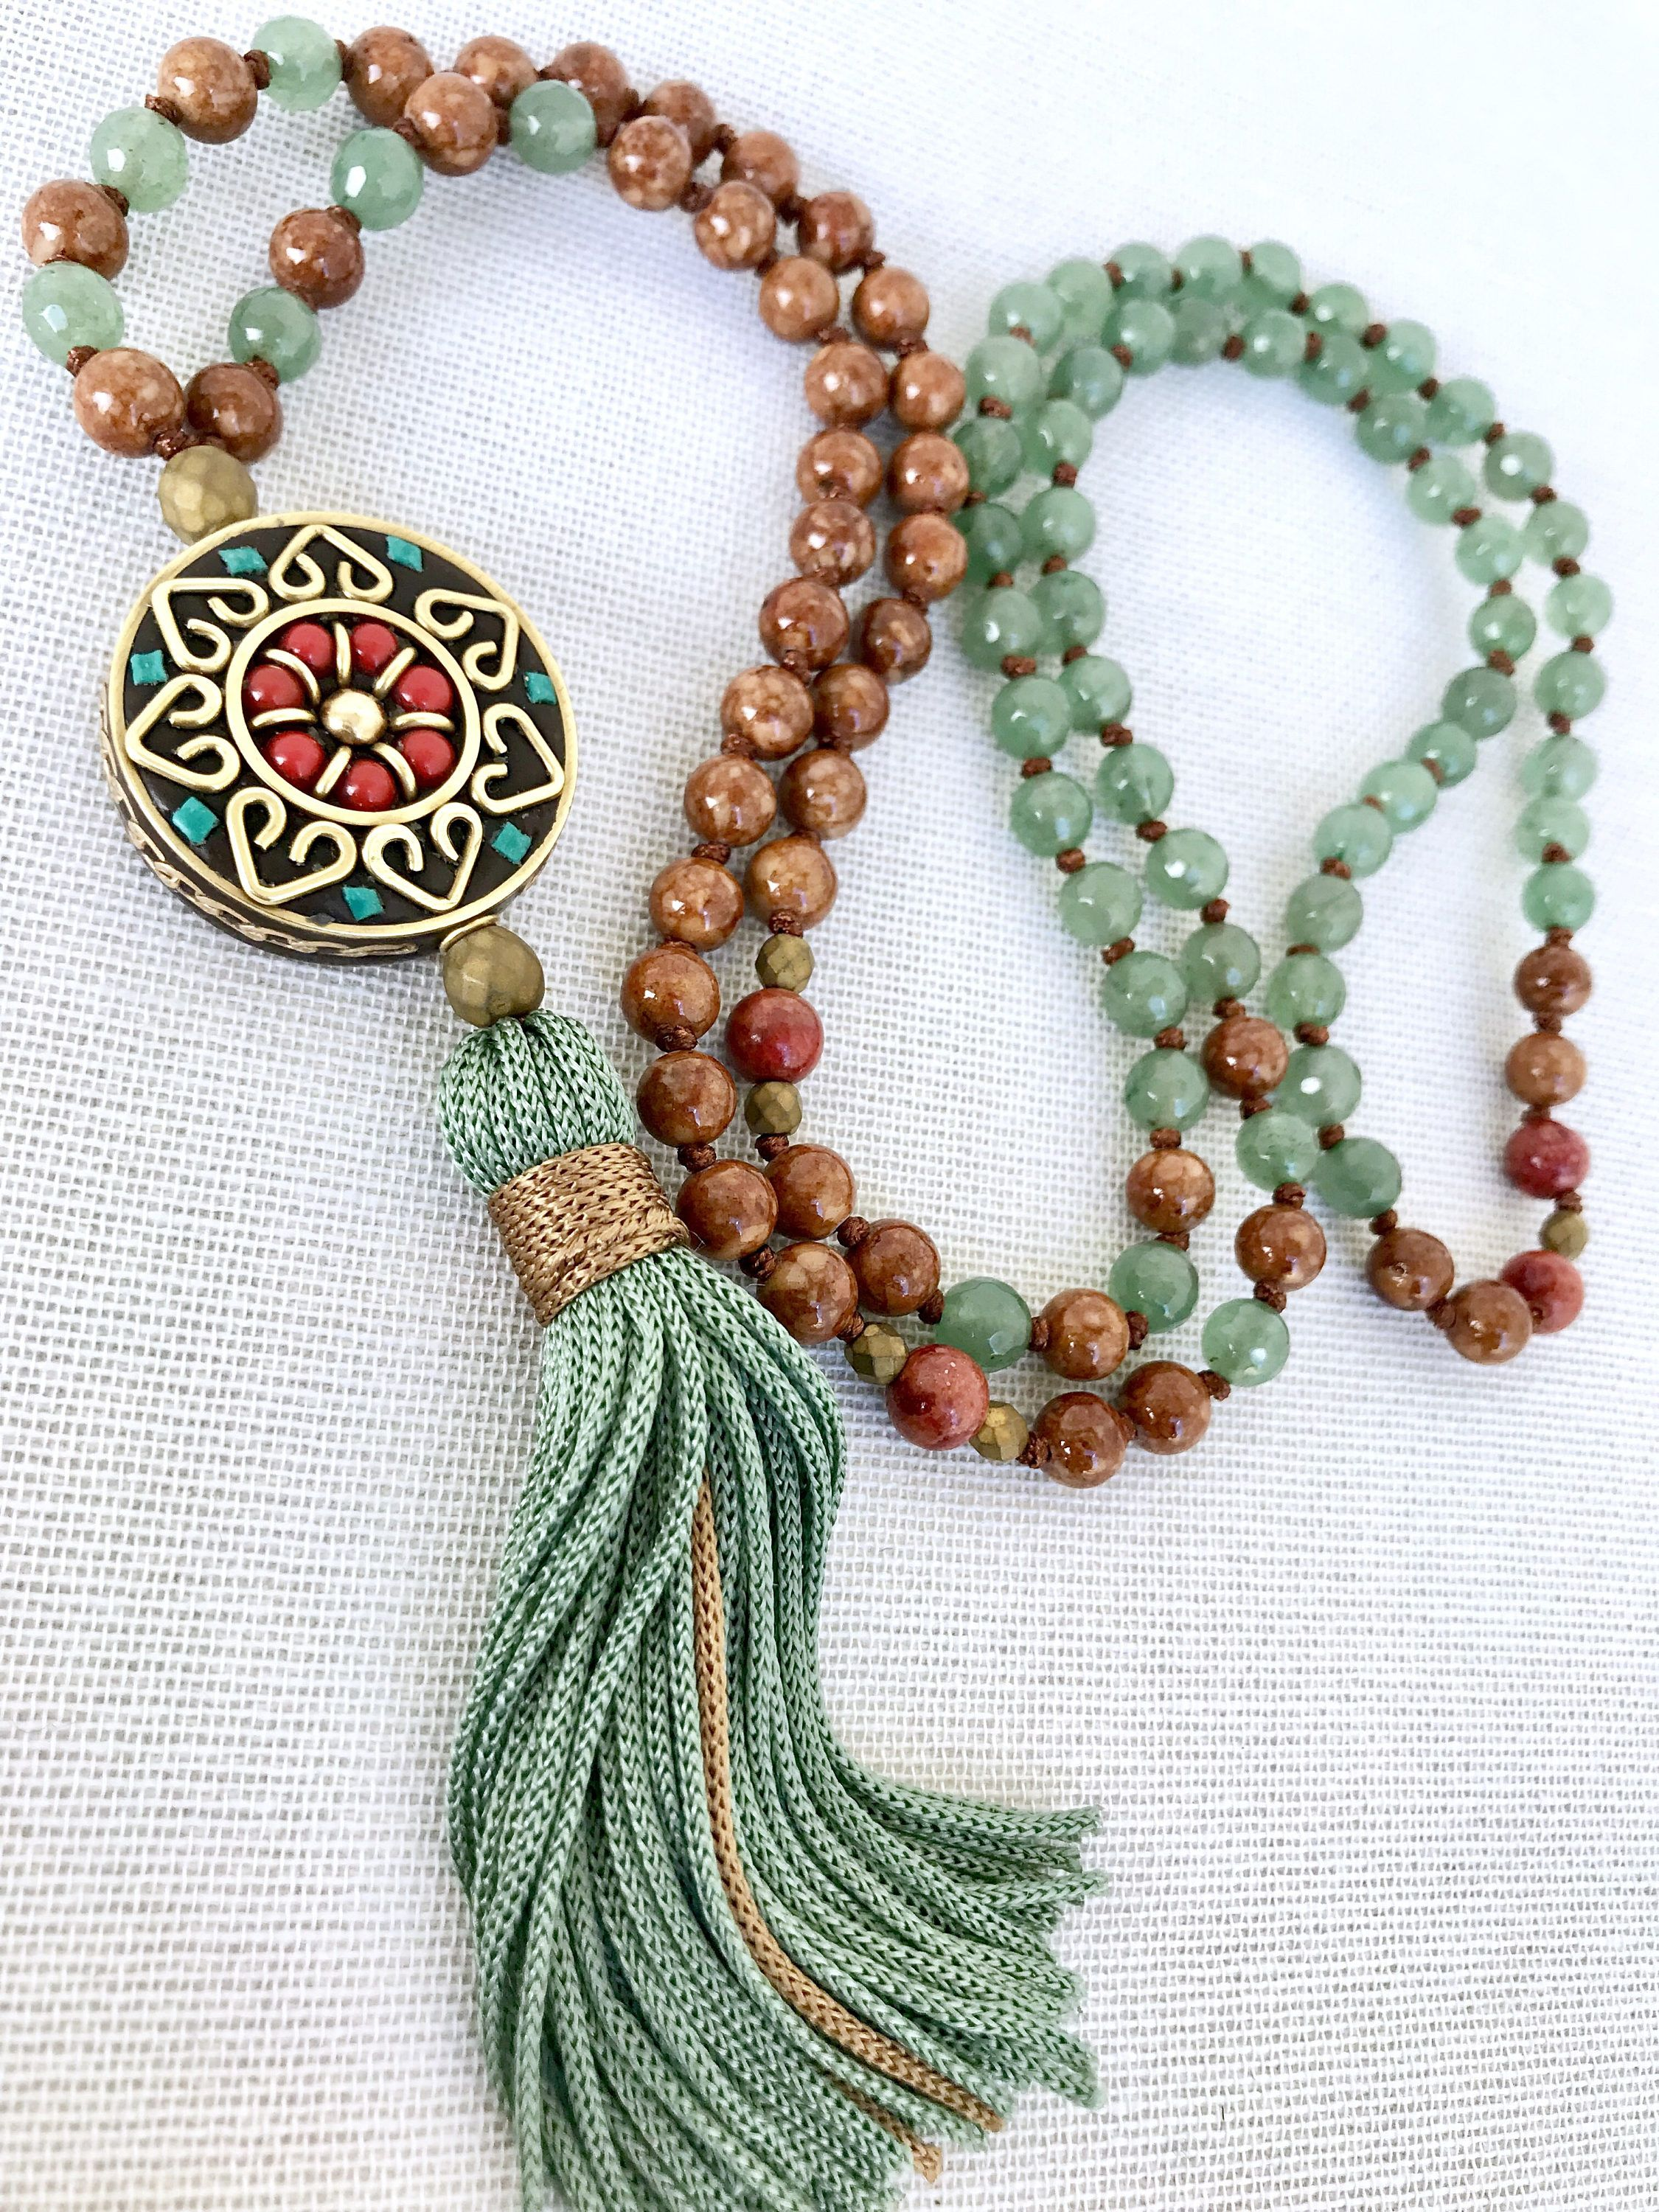 boho mala meditation jewelry necklace pin yoga